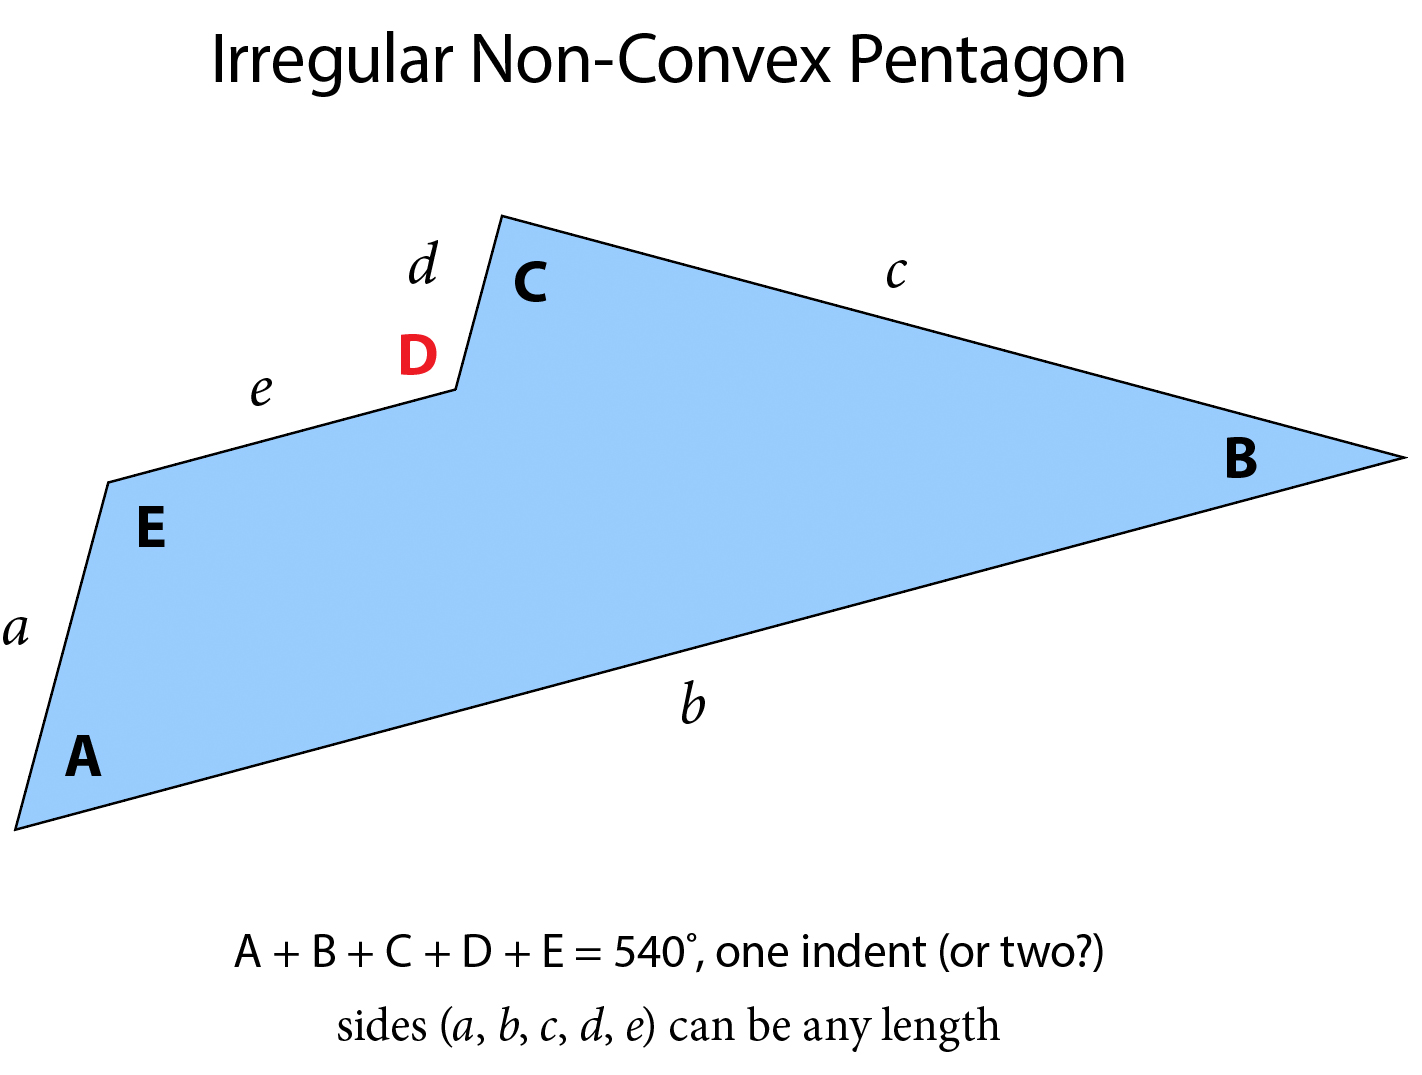 An irregular pentagon with one concave angle